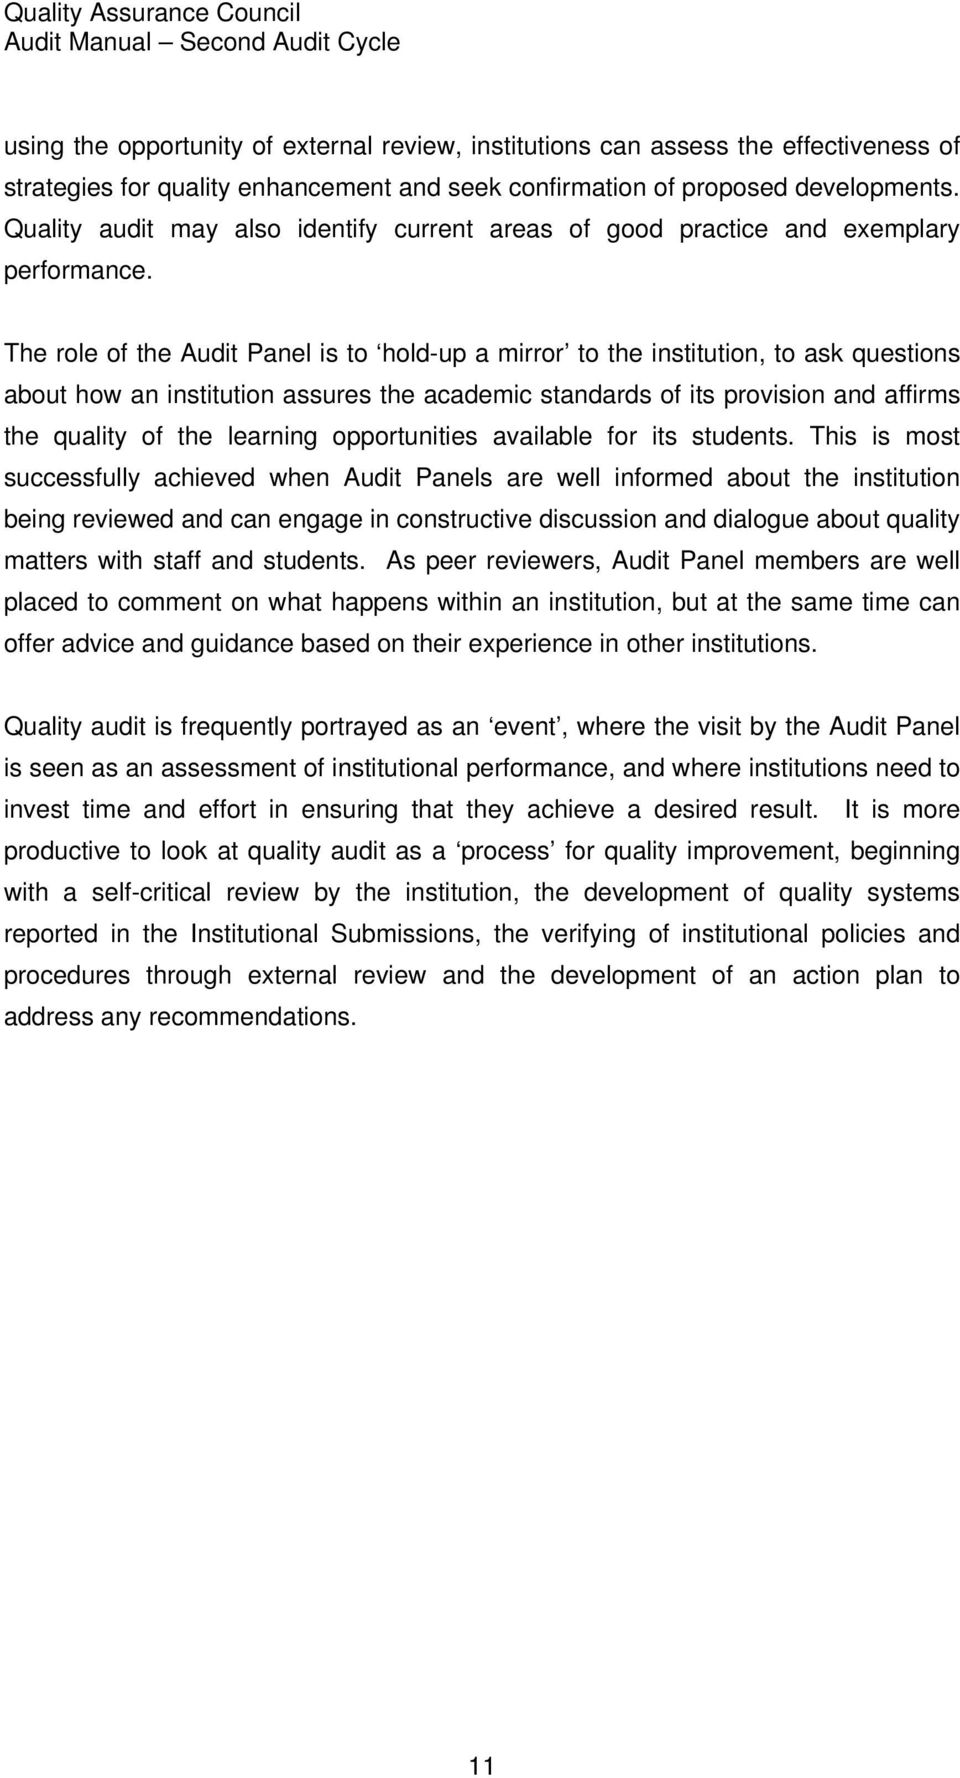 The role of the Audit Panel is to hold-up a mirror to the institution, to ask questions about how an institution assures the academic standards of its provision and affirms the quality of the